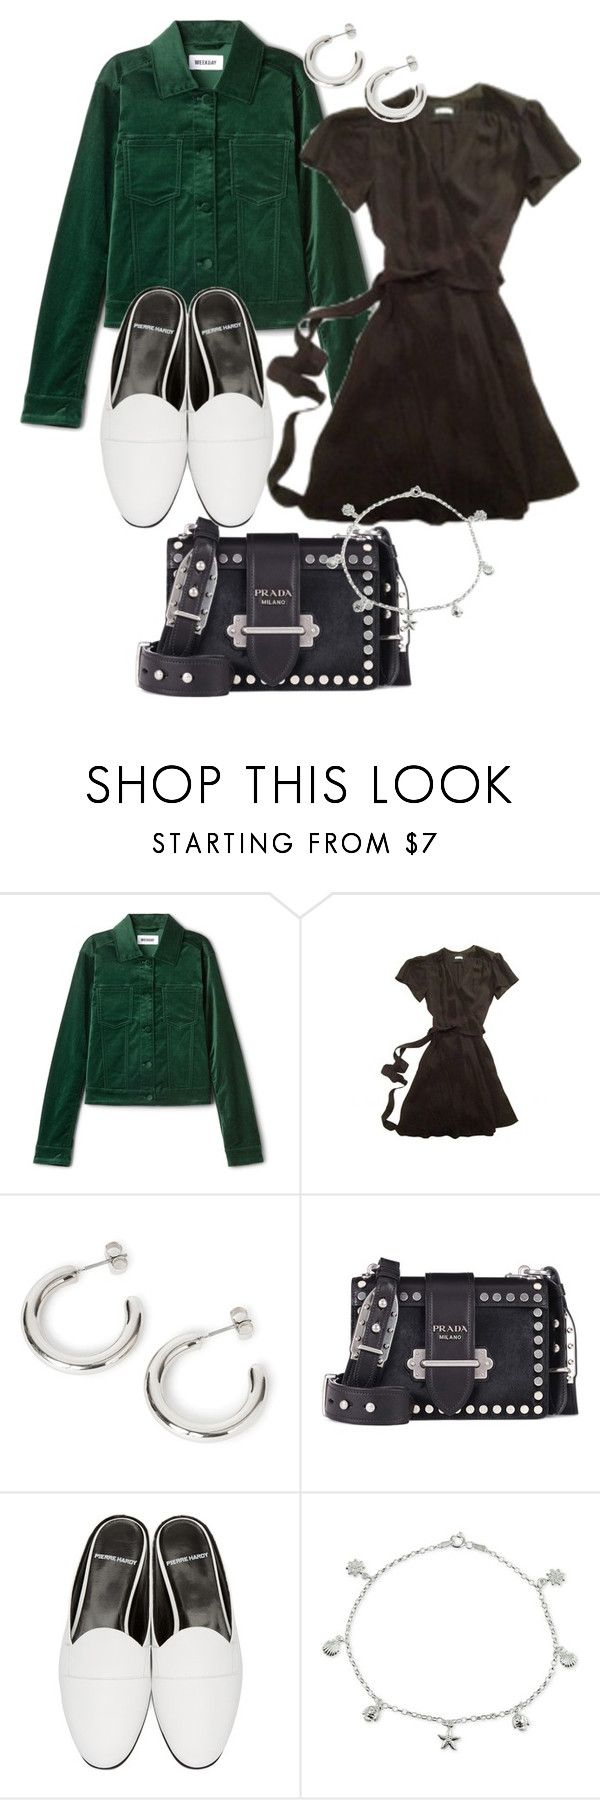 """""""Untitled #22456"""" by florencia95 ❤ liked on Polyvore featuring Prada, Pierre Hardy and Giani Bernini"""